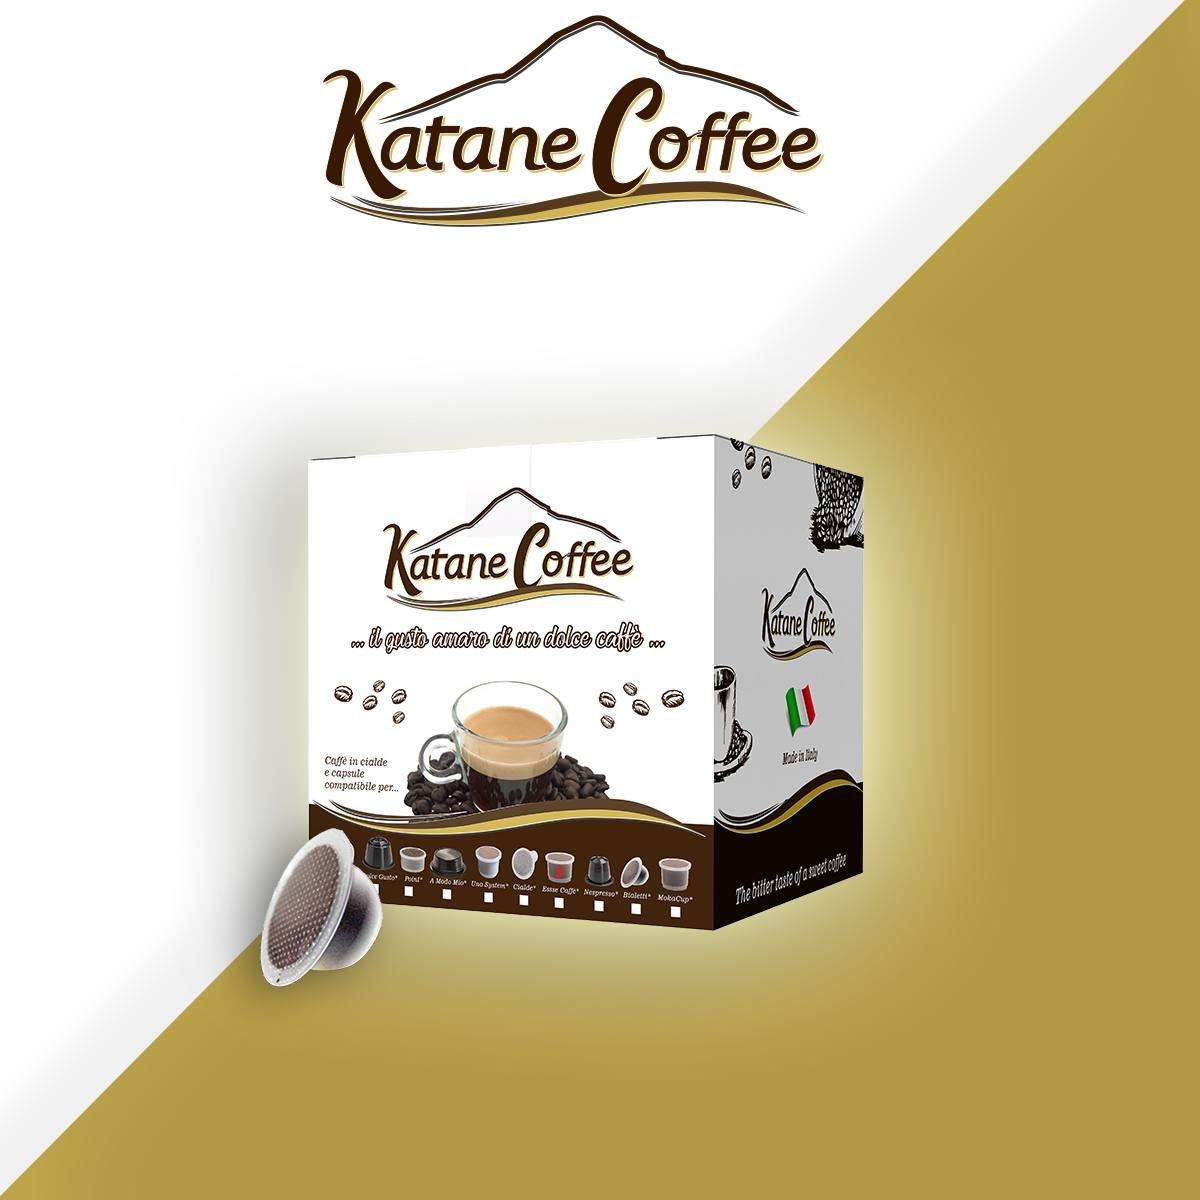 Katane Coffee Bialetti 100